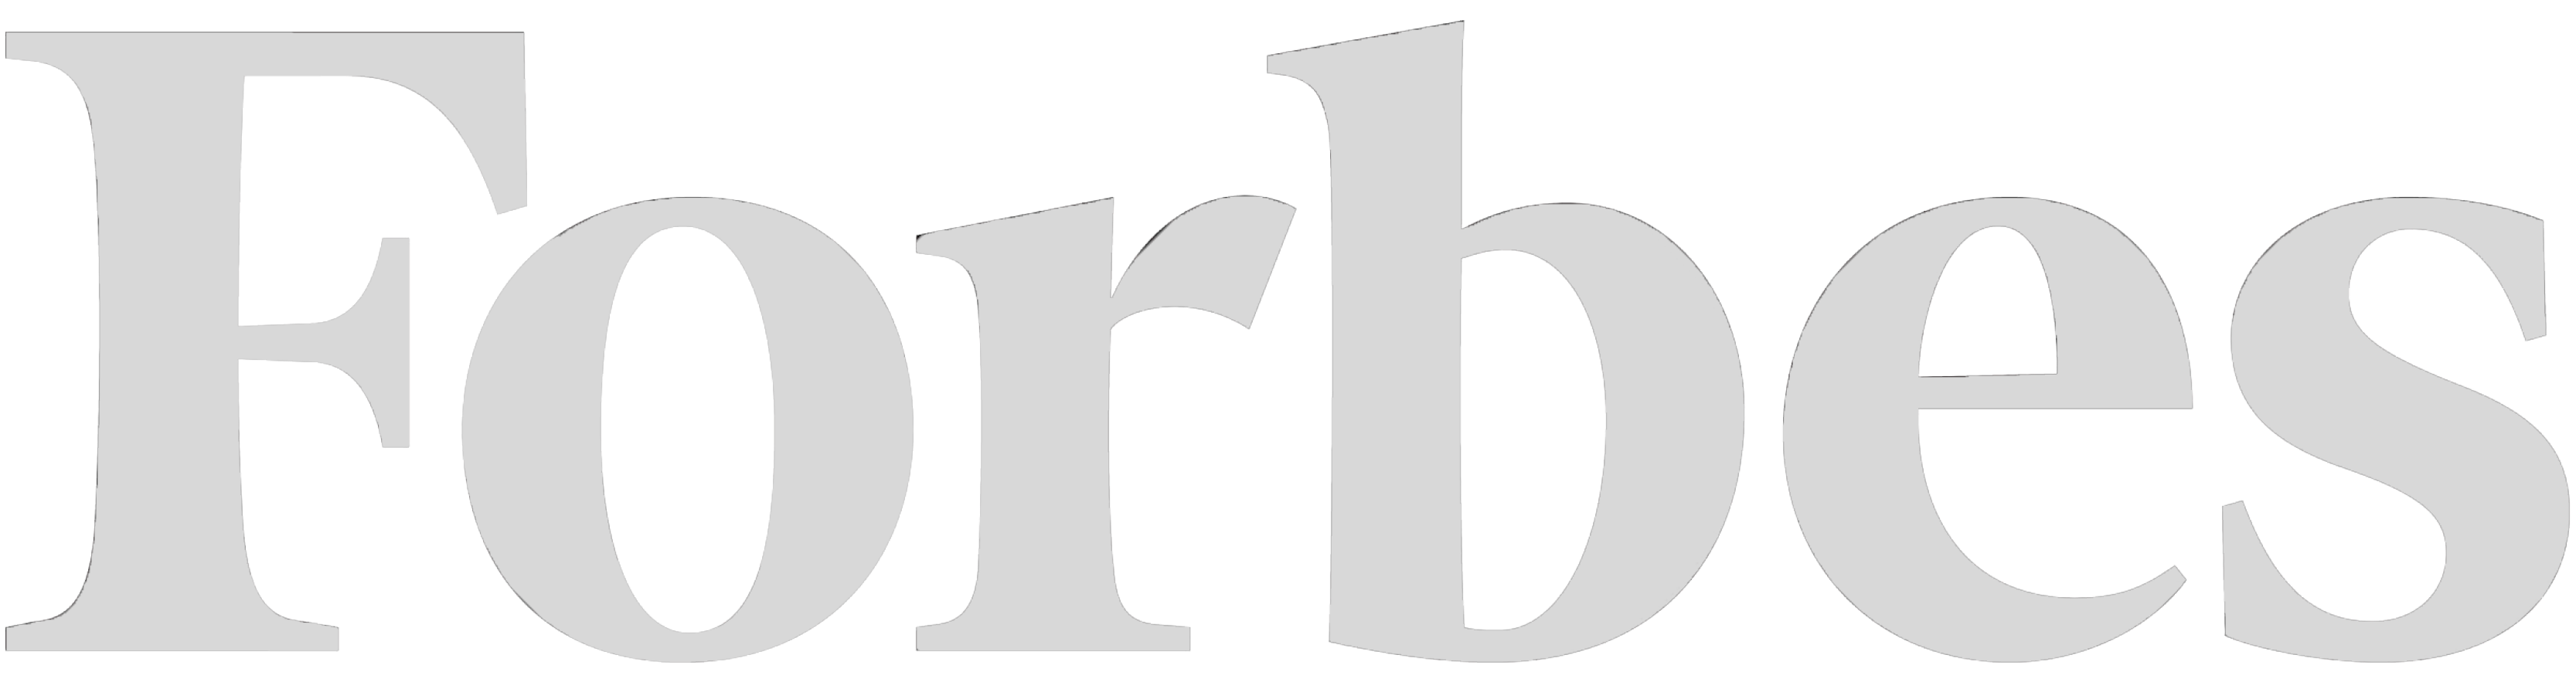 Forbes-Black-Logo-PNG-03003-2 copy.png